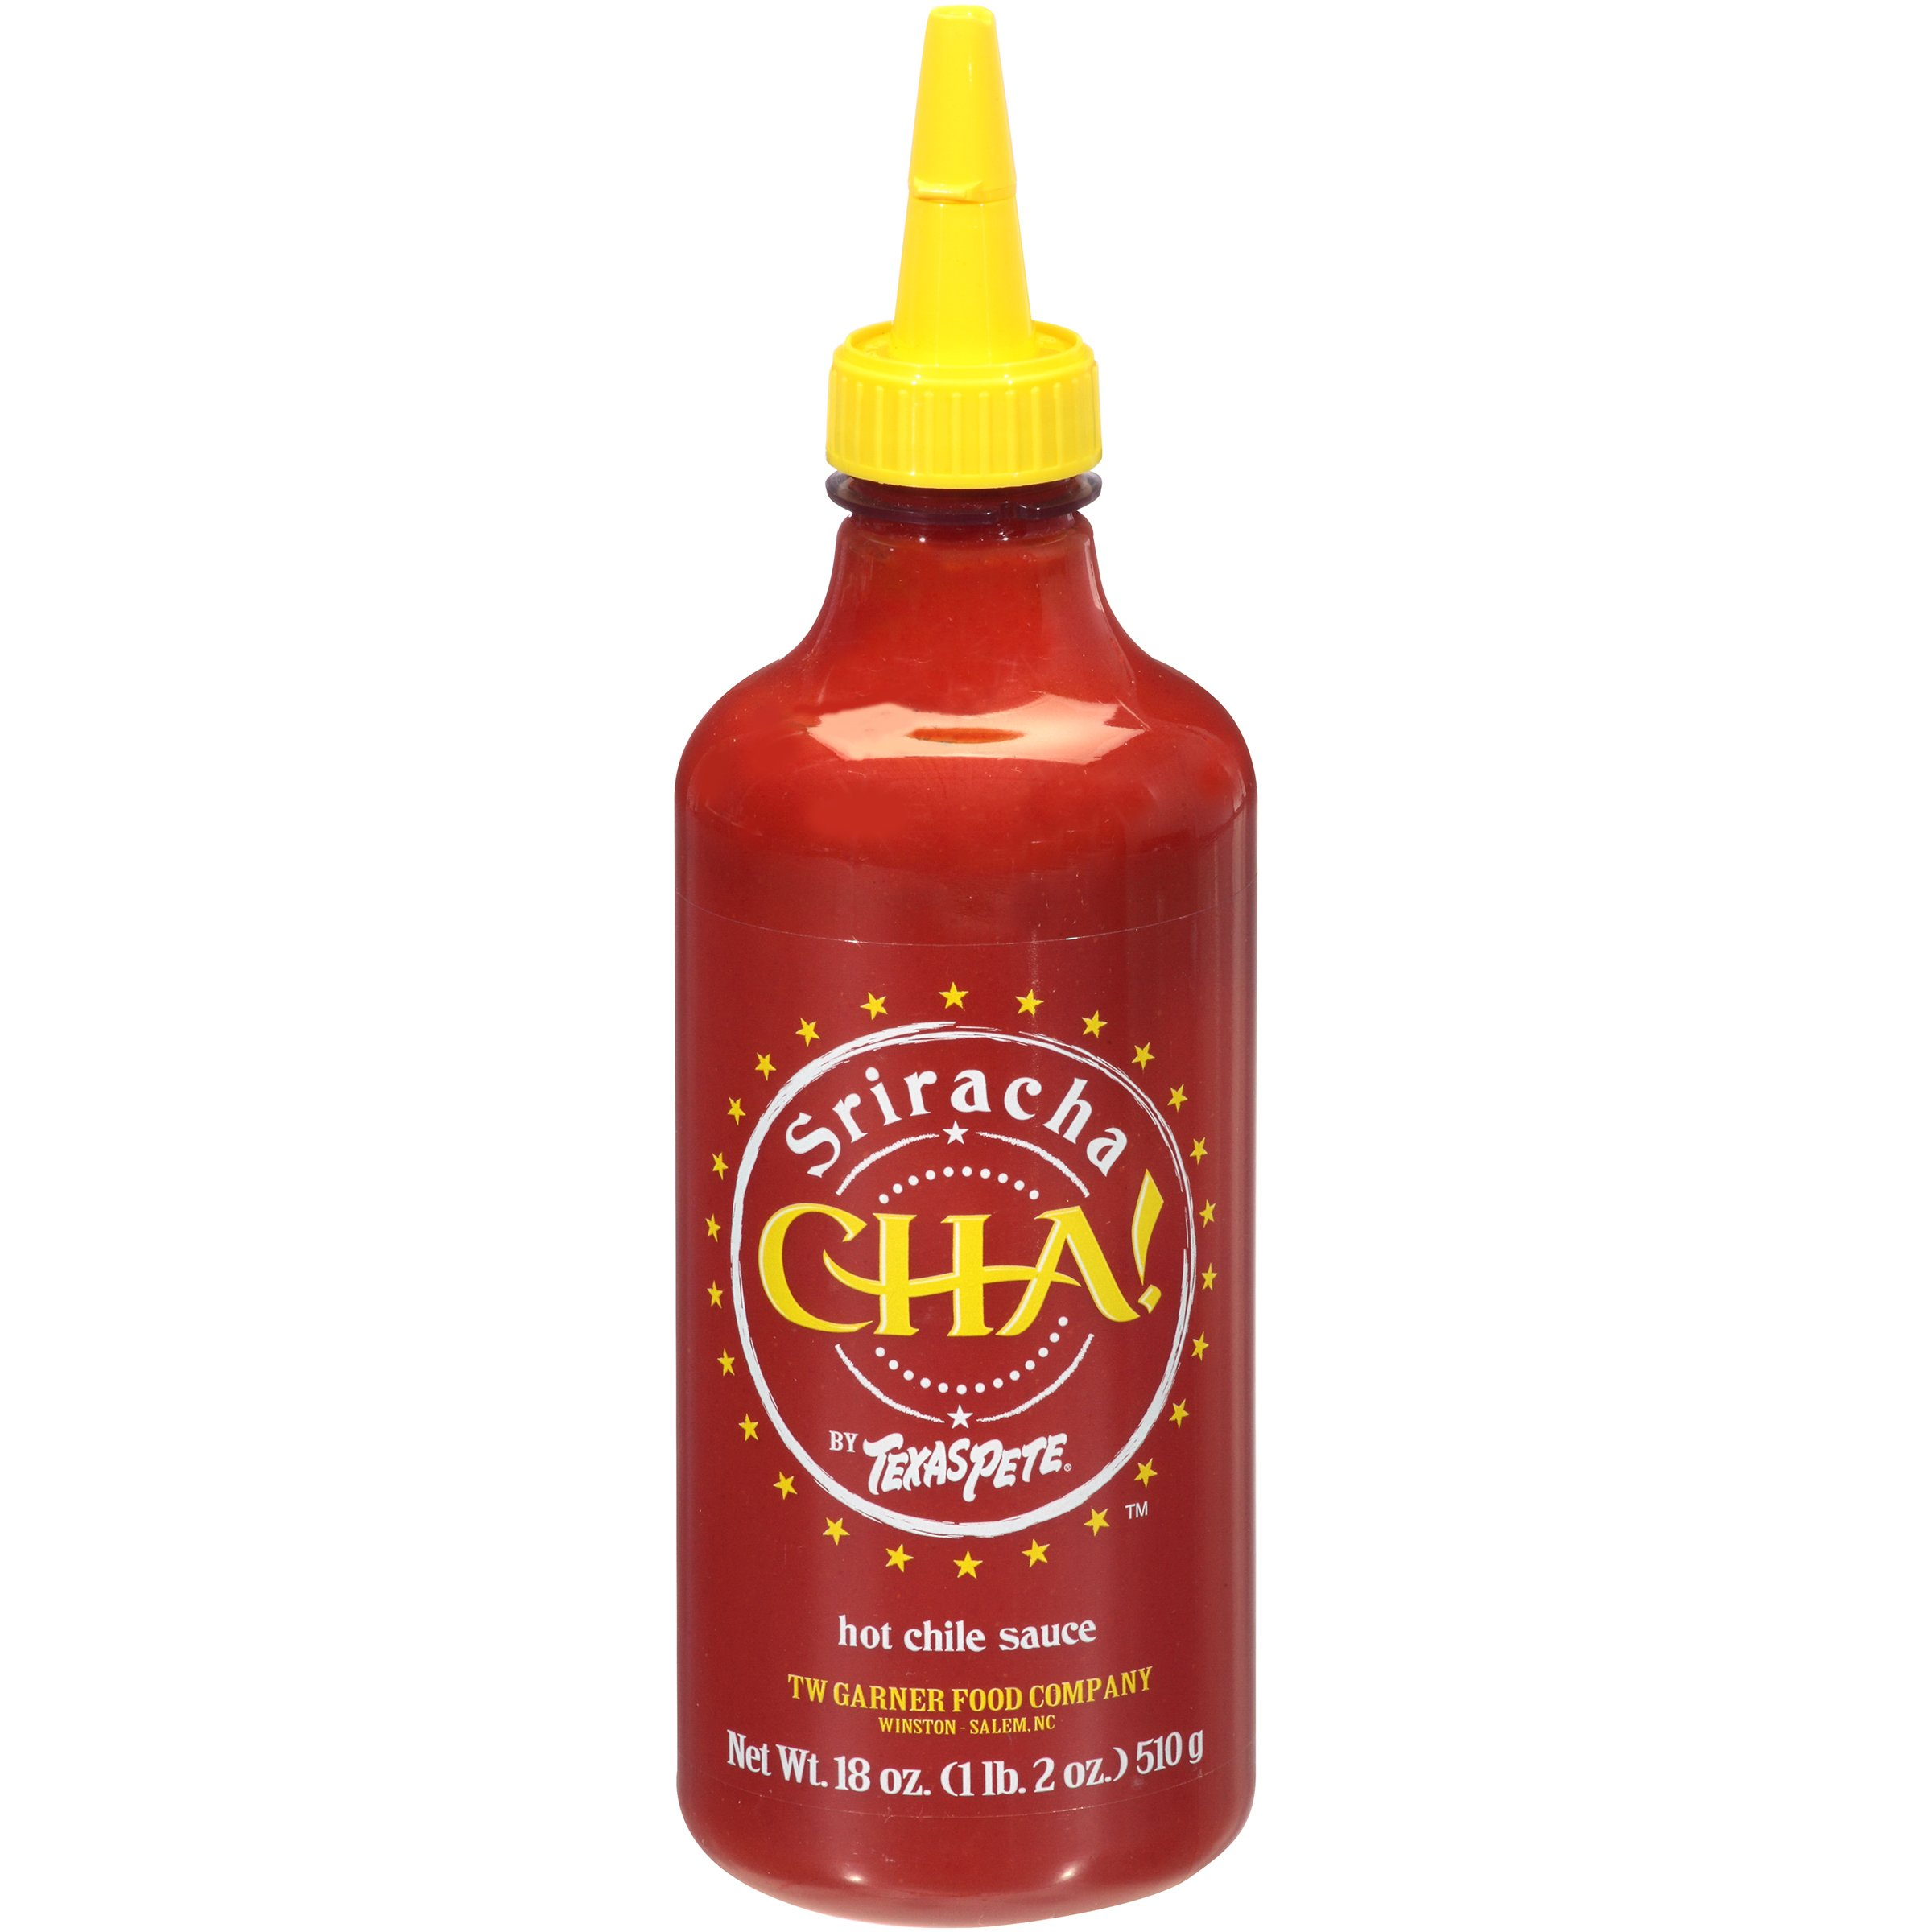 Texas Pete, Shipper CHA! 18 oz. (30 count) by Texas Pete